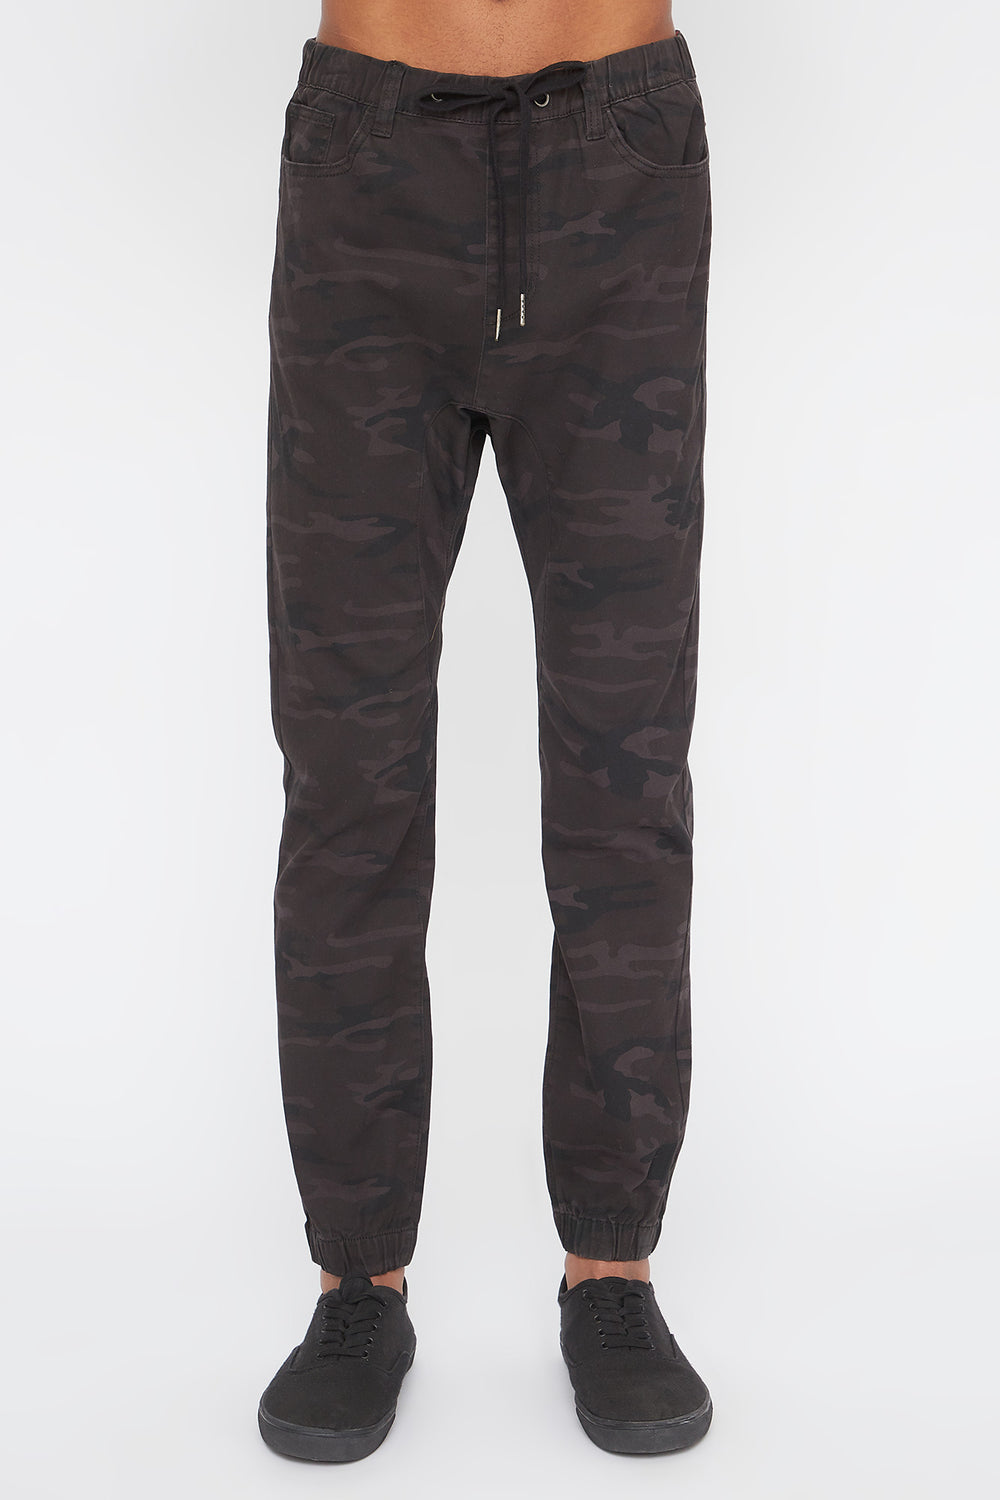 Zoo York Mens Camo 5-Pocket Jogger Black with White